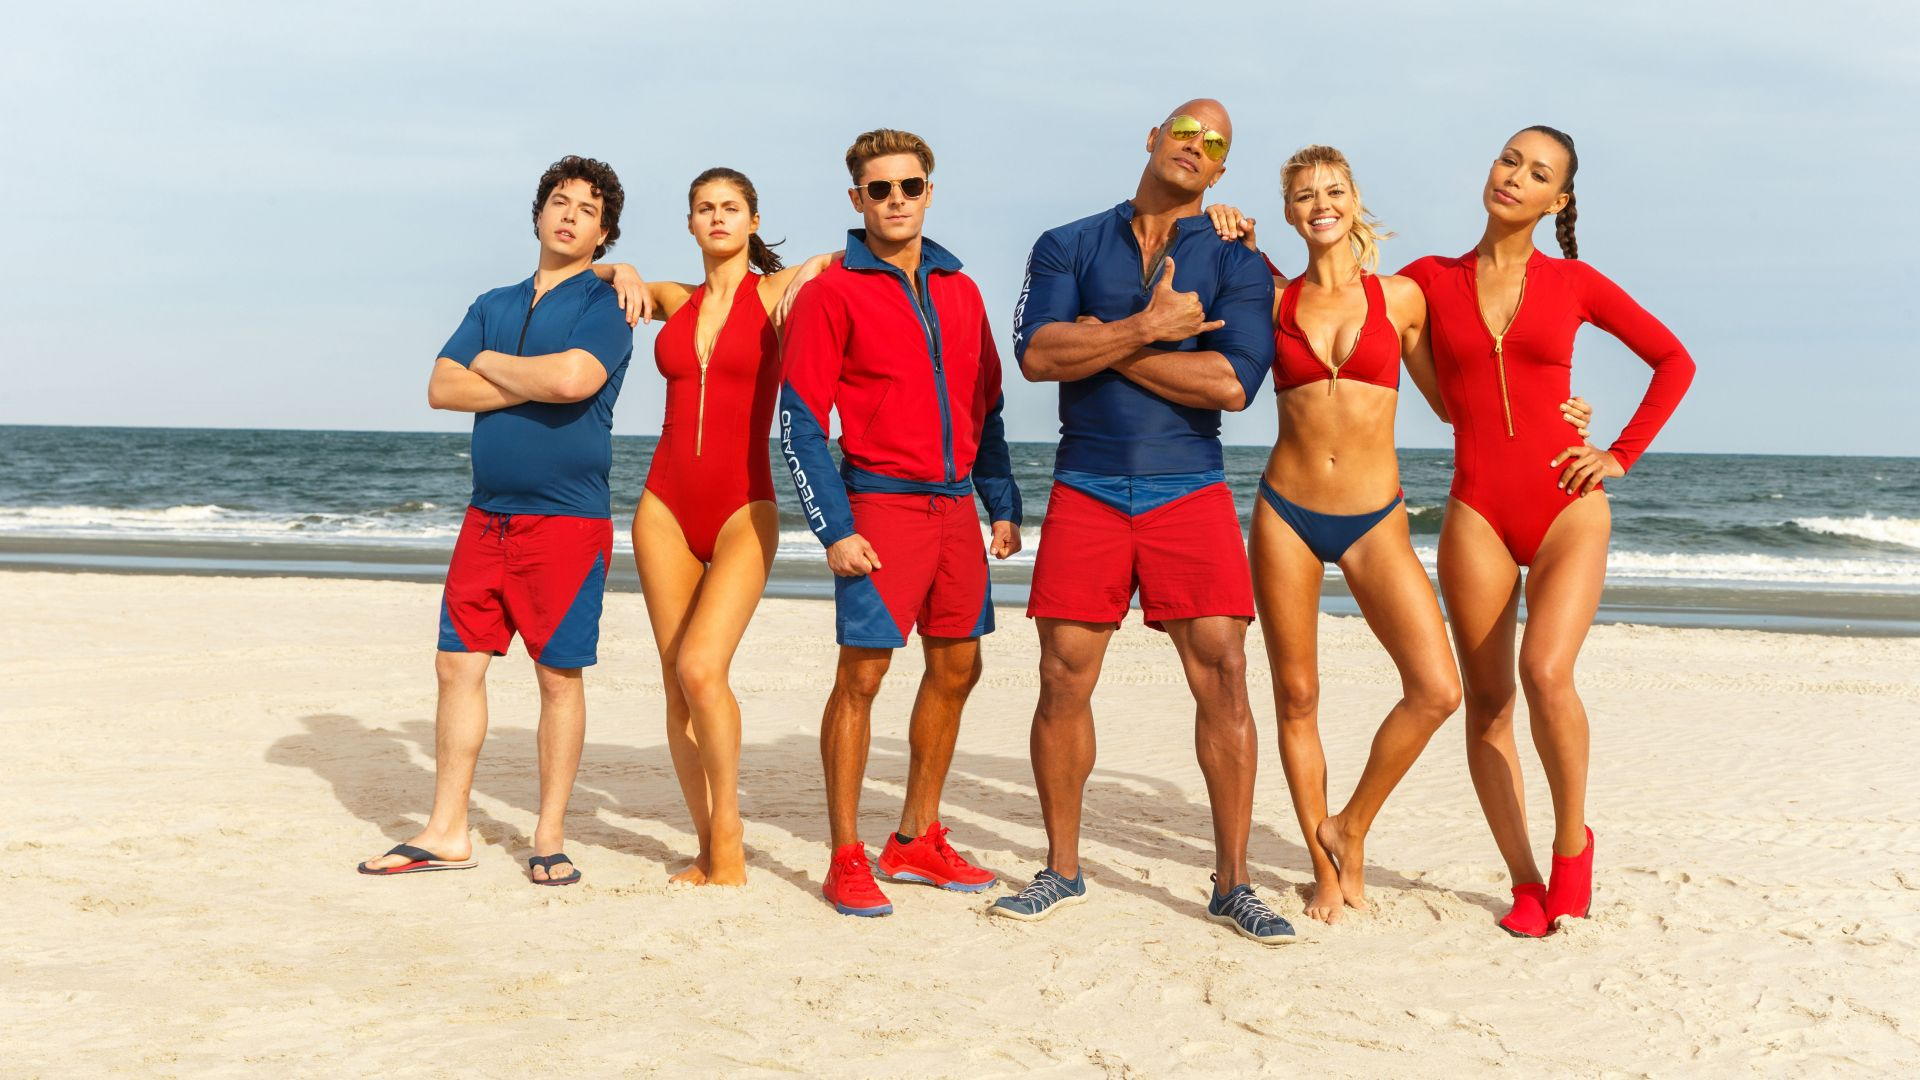 Спасатели Малибу, Зак Эфрон, Приянка Чопра, Дуэйн Джонсон, Baywatch, Dwayne Johnson, Zac Efron, Alexandra Daddario, best movies (horizontal)